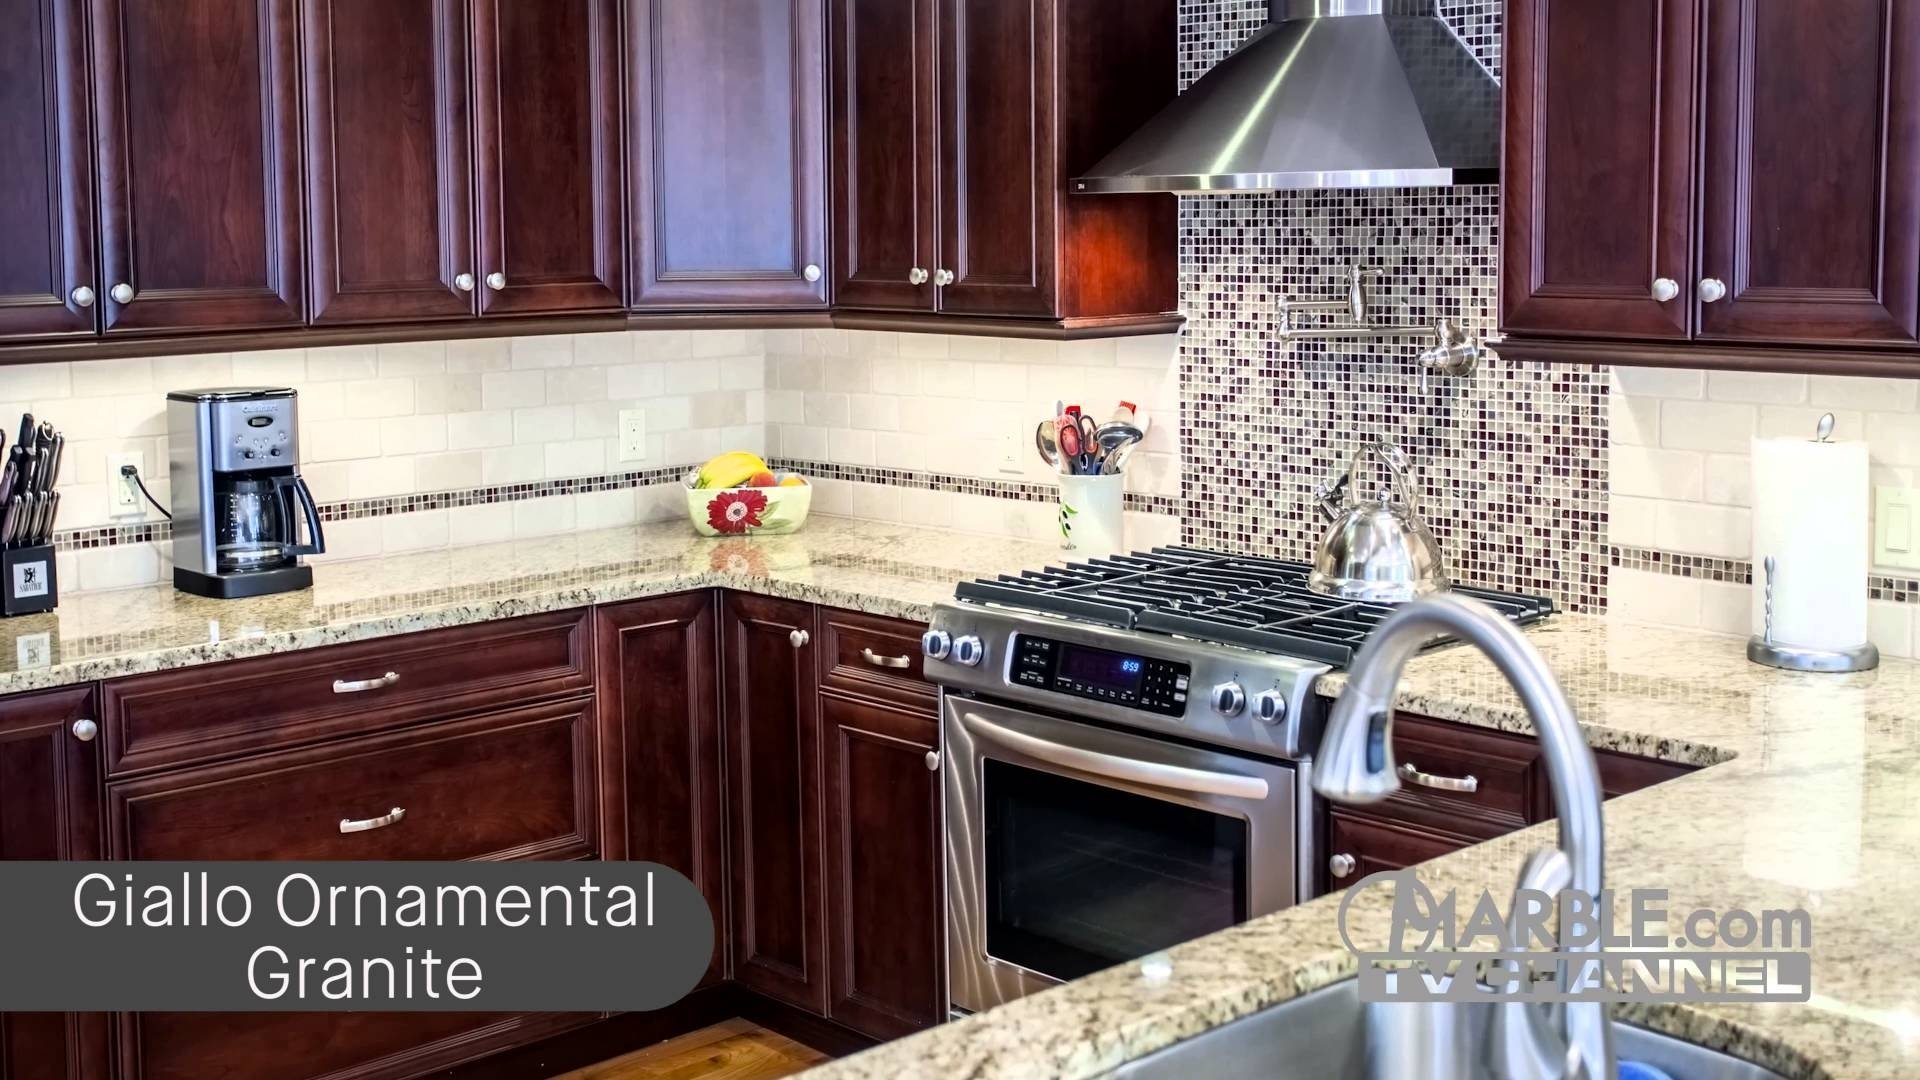 10 Attractive Backsplash Ideas For Cherry Cabinets top 5 granites for dark cabinets youtube 2021